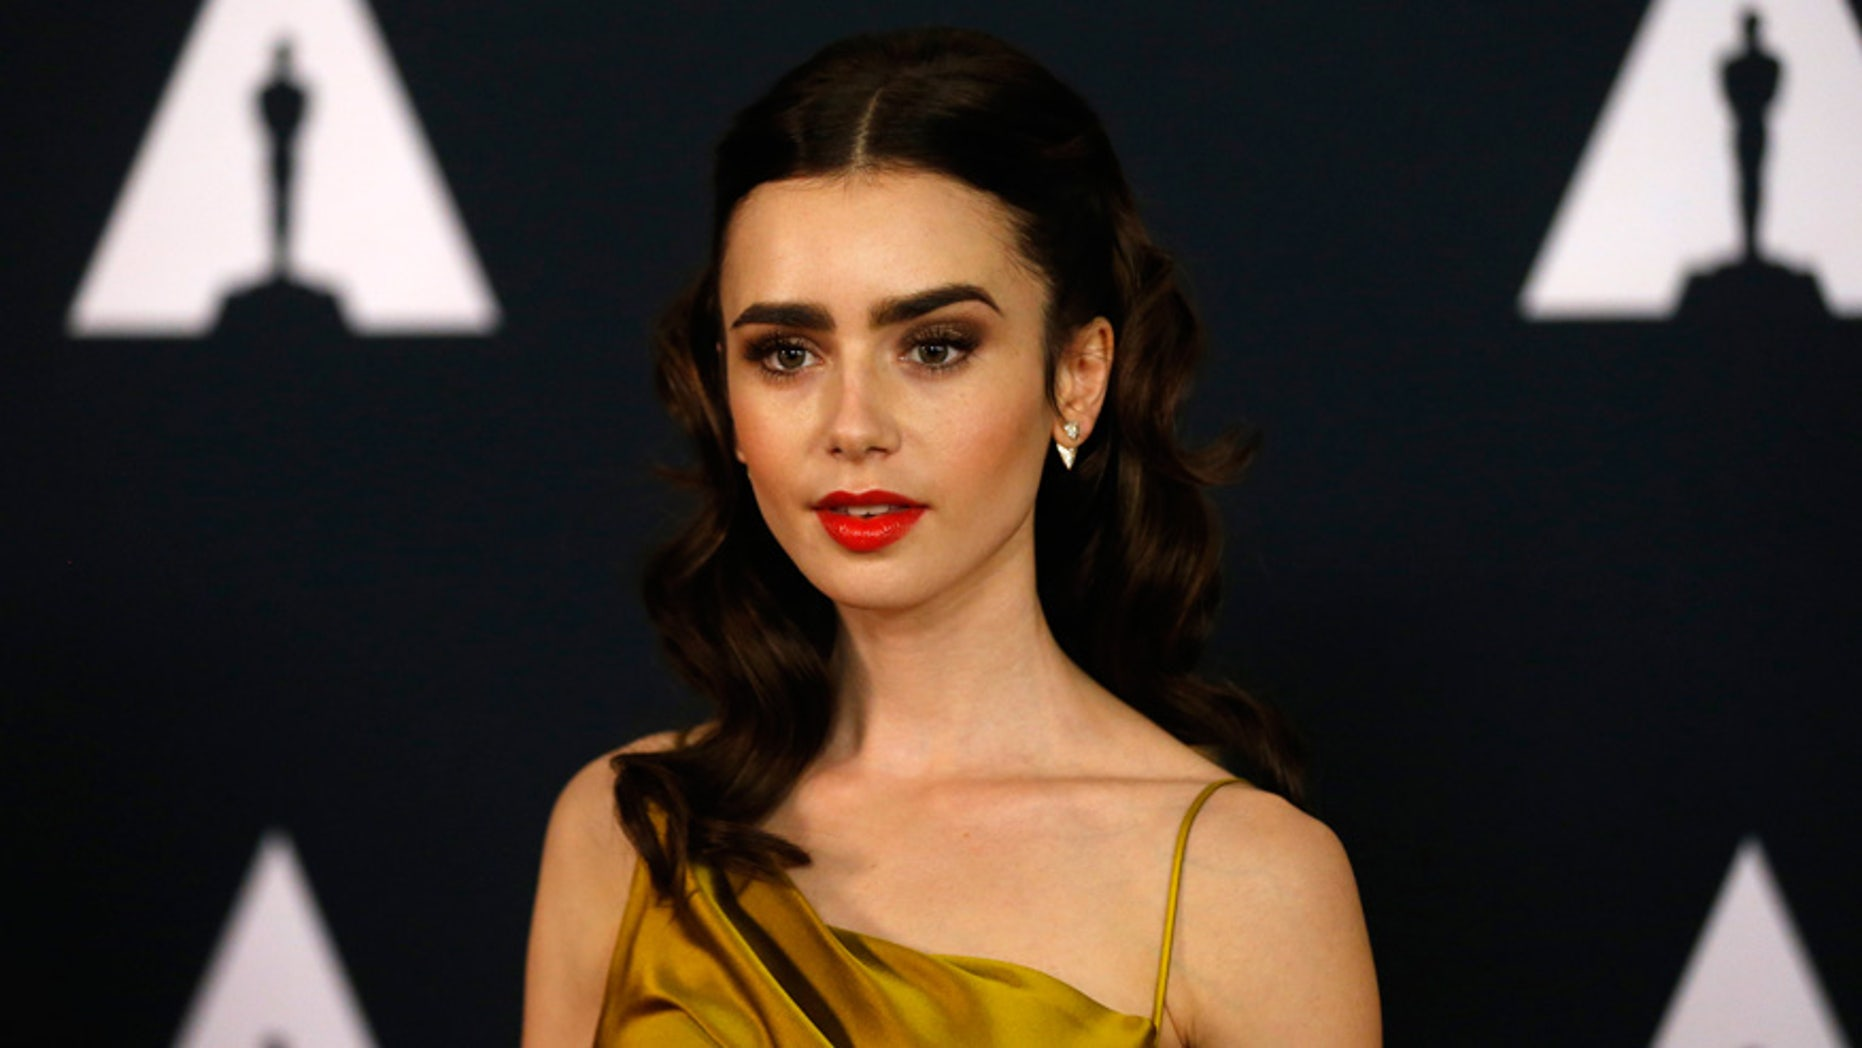 Lily Collins poses at an event.